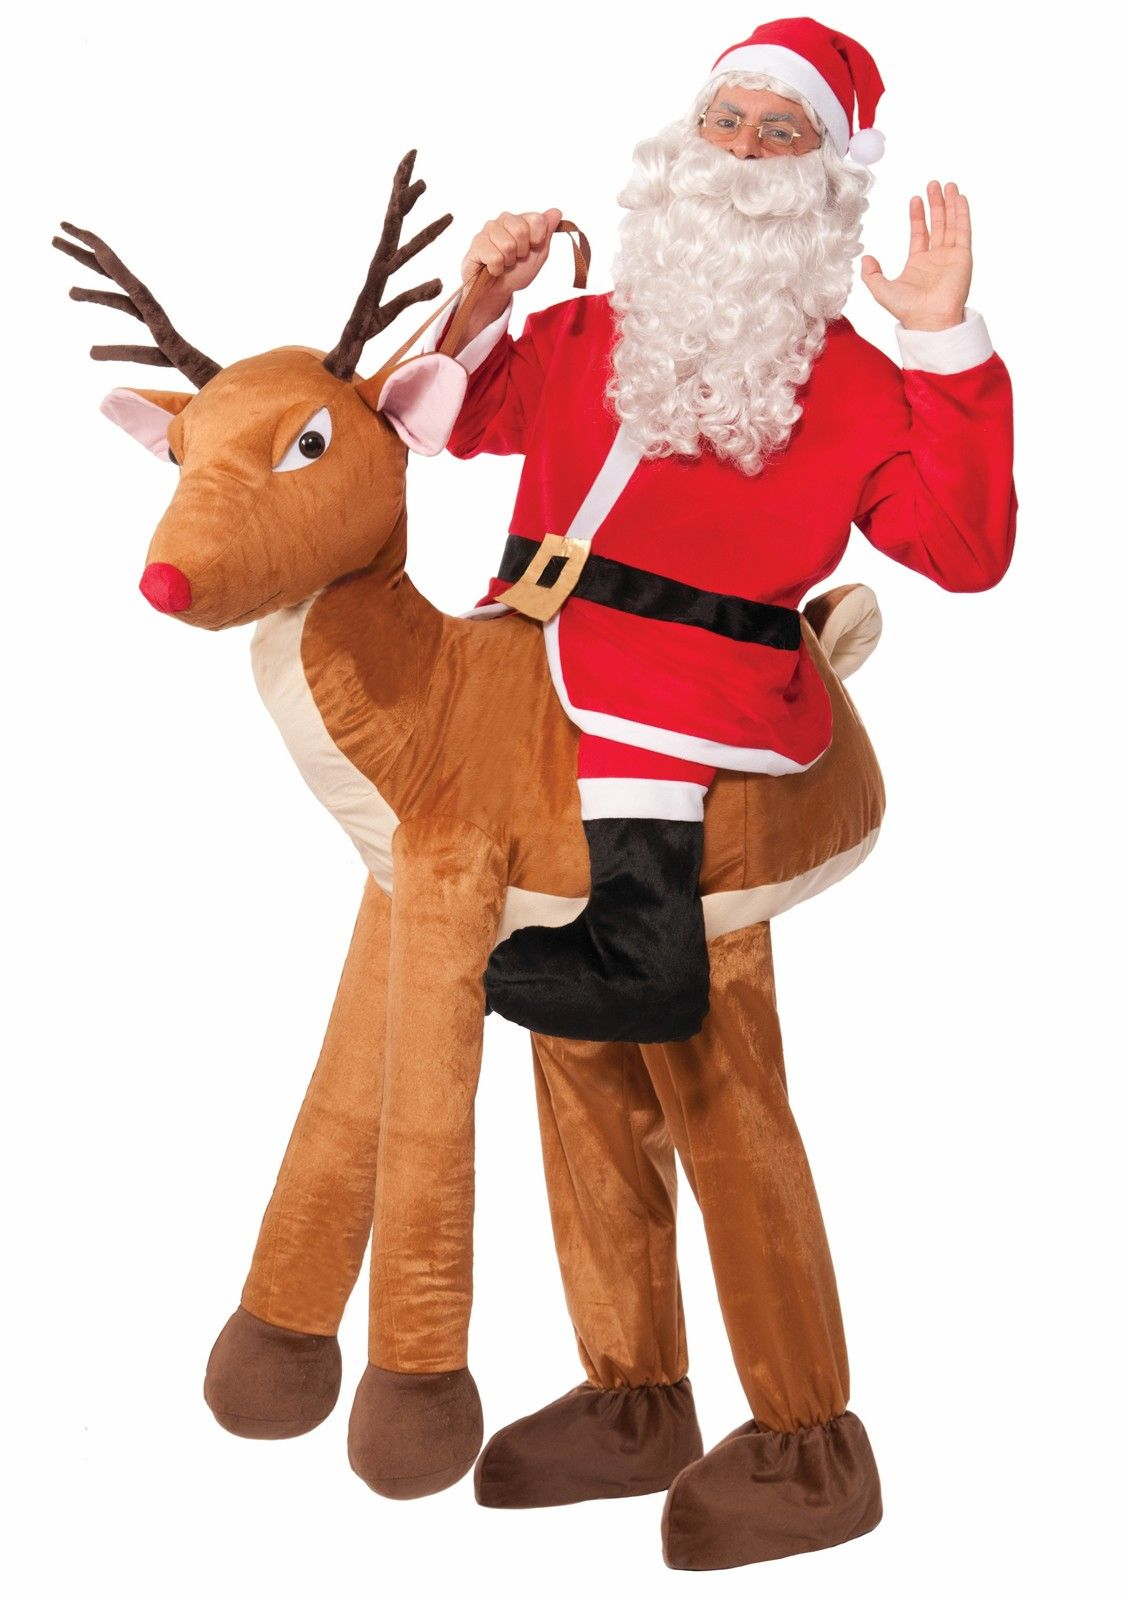 Christmas Carry Santa Claus Ride on Reindeer Mascot Costume Suit Adult Dress New